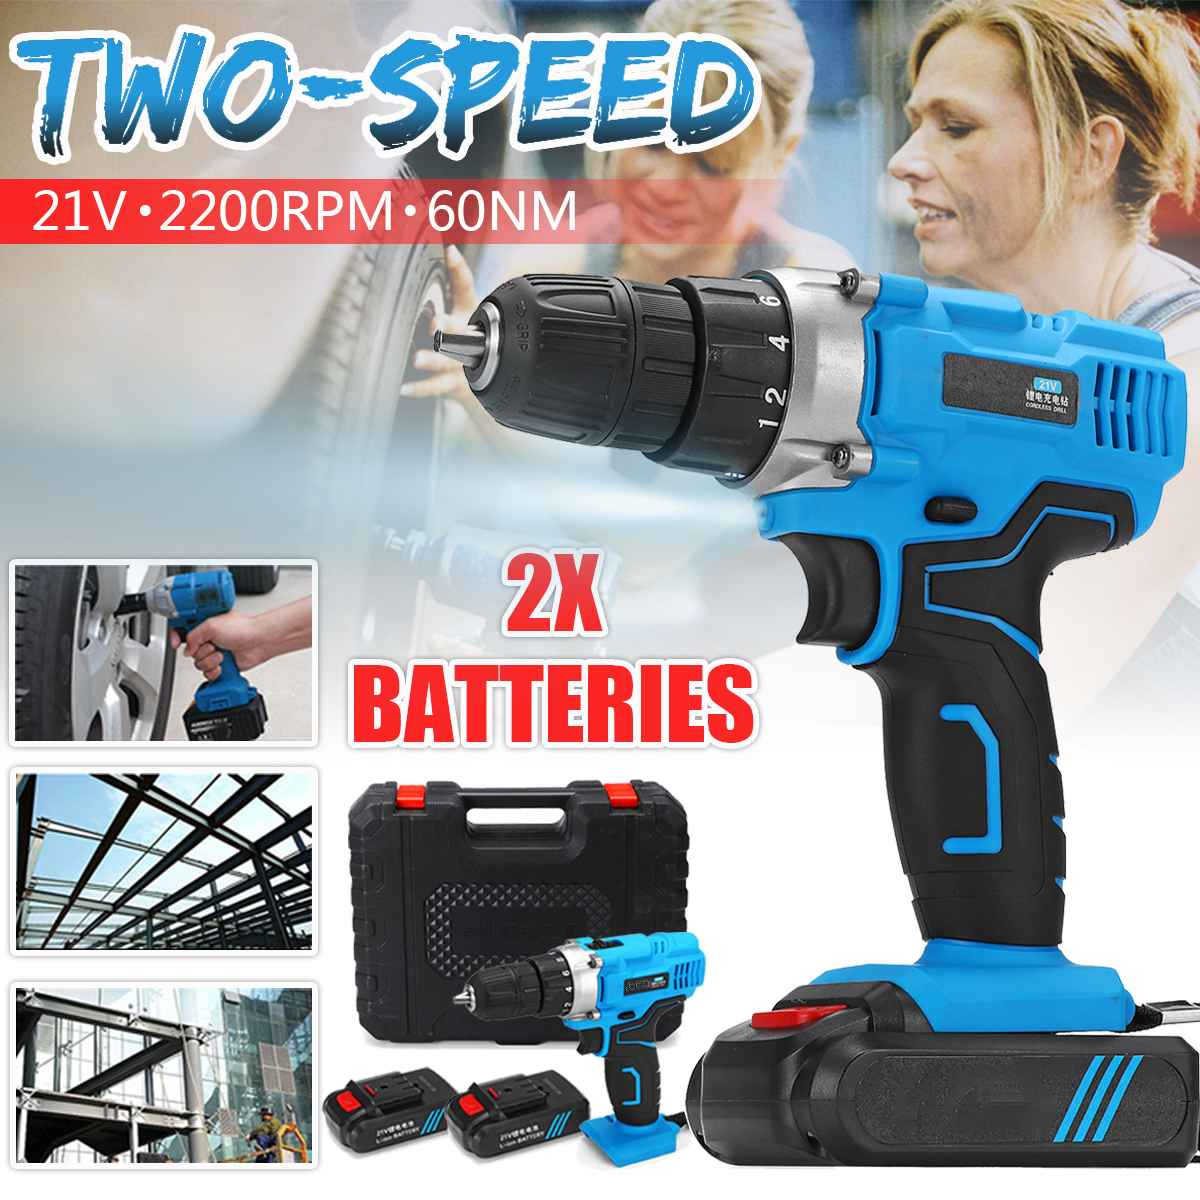 21V 2200RPM Cordless Electric Screwdriver Mini Electric Drill Multi-Function Lithium-Ion Rechargeable Electric Drill Power Tools